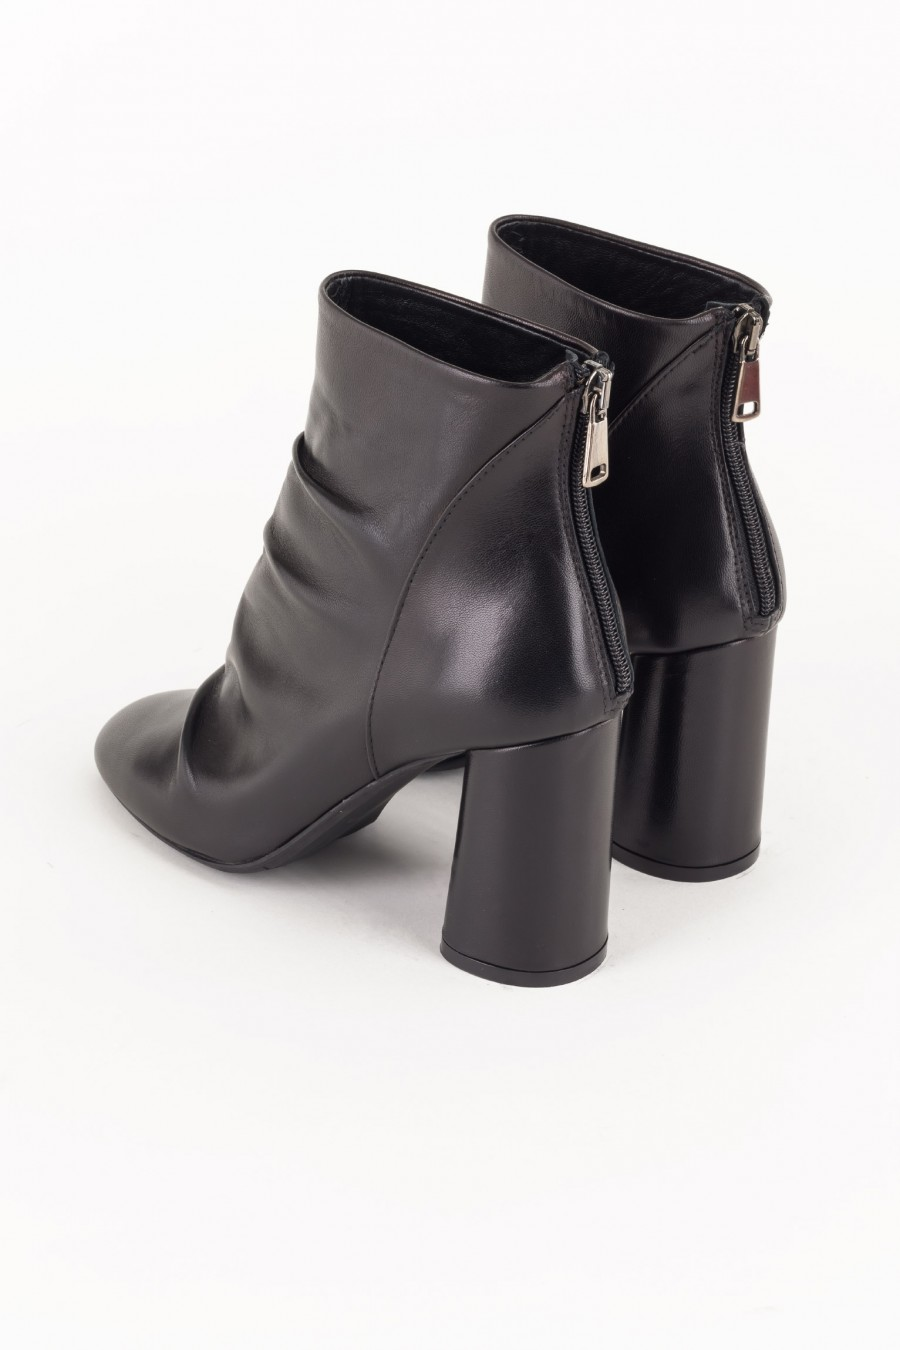 Black boots with rounded heels